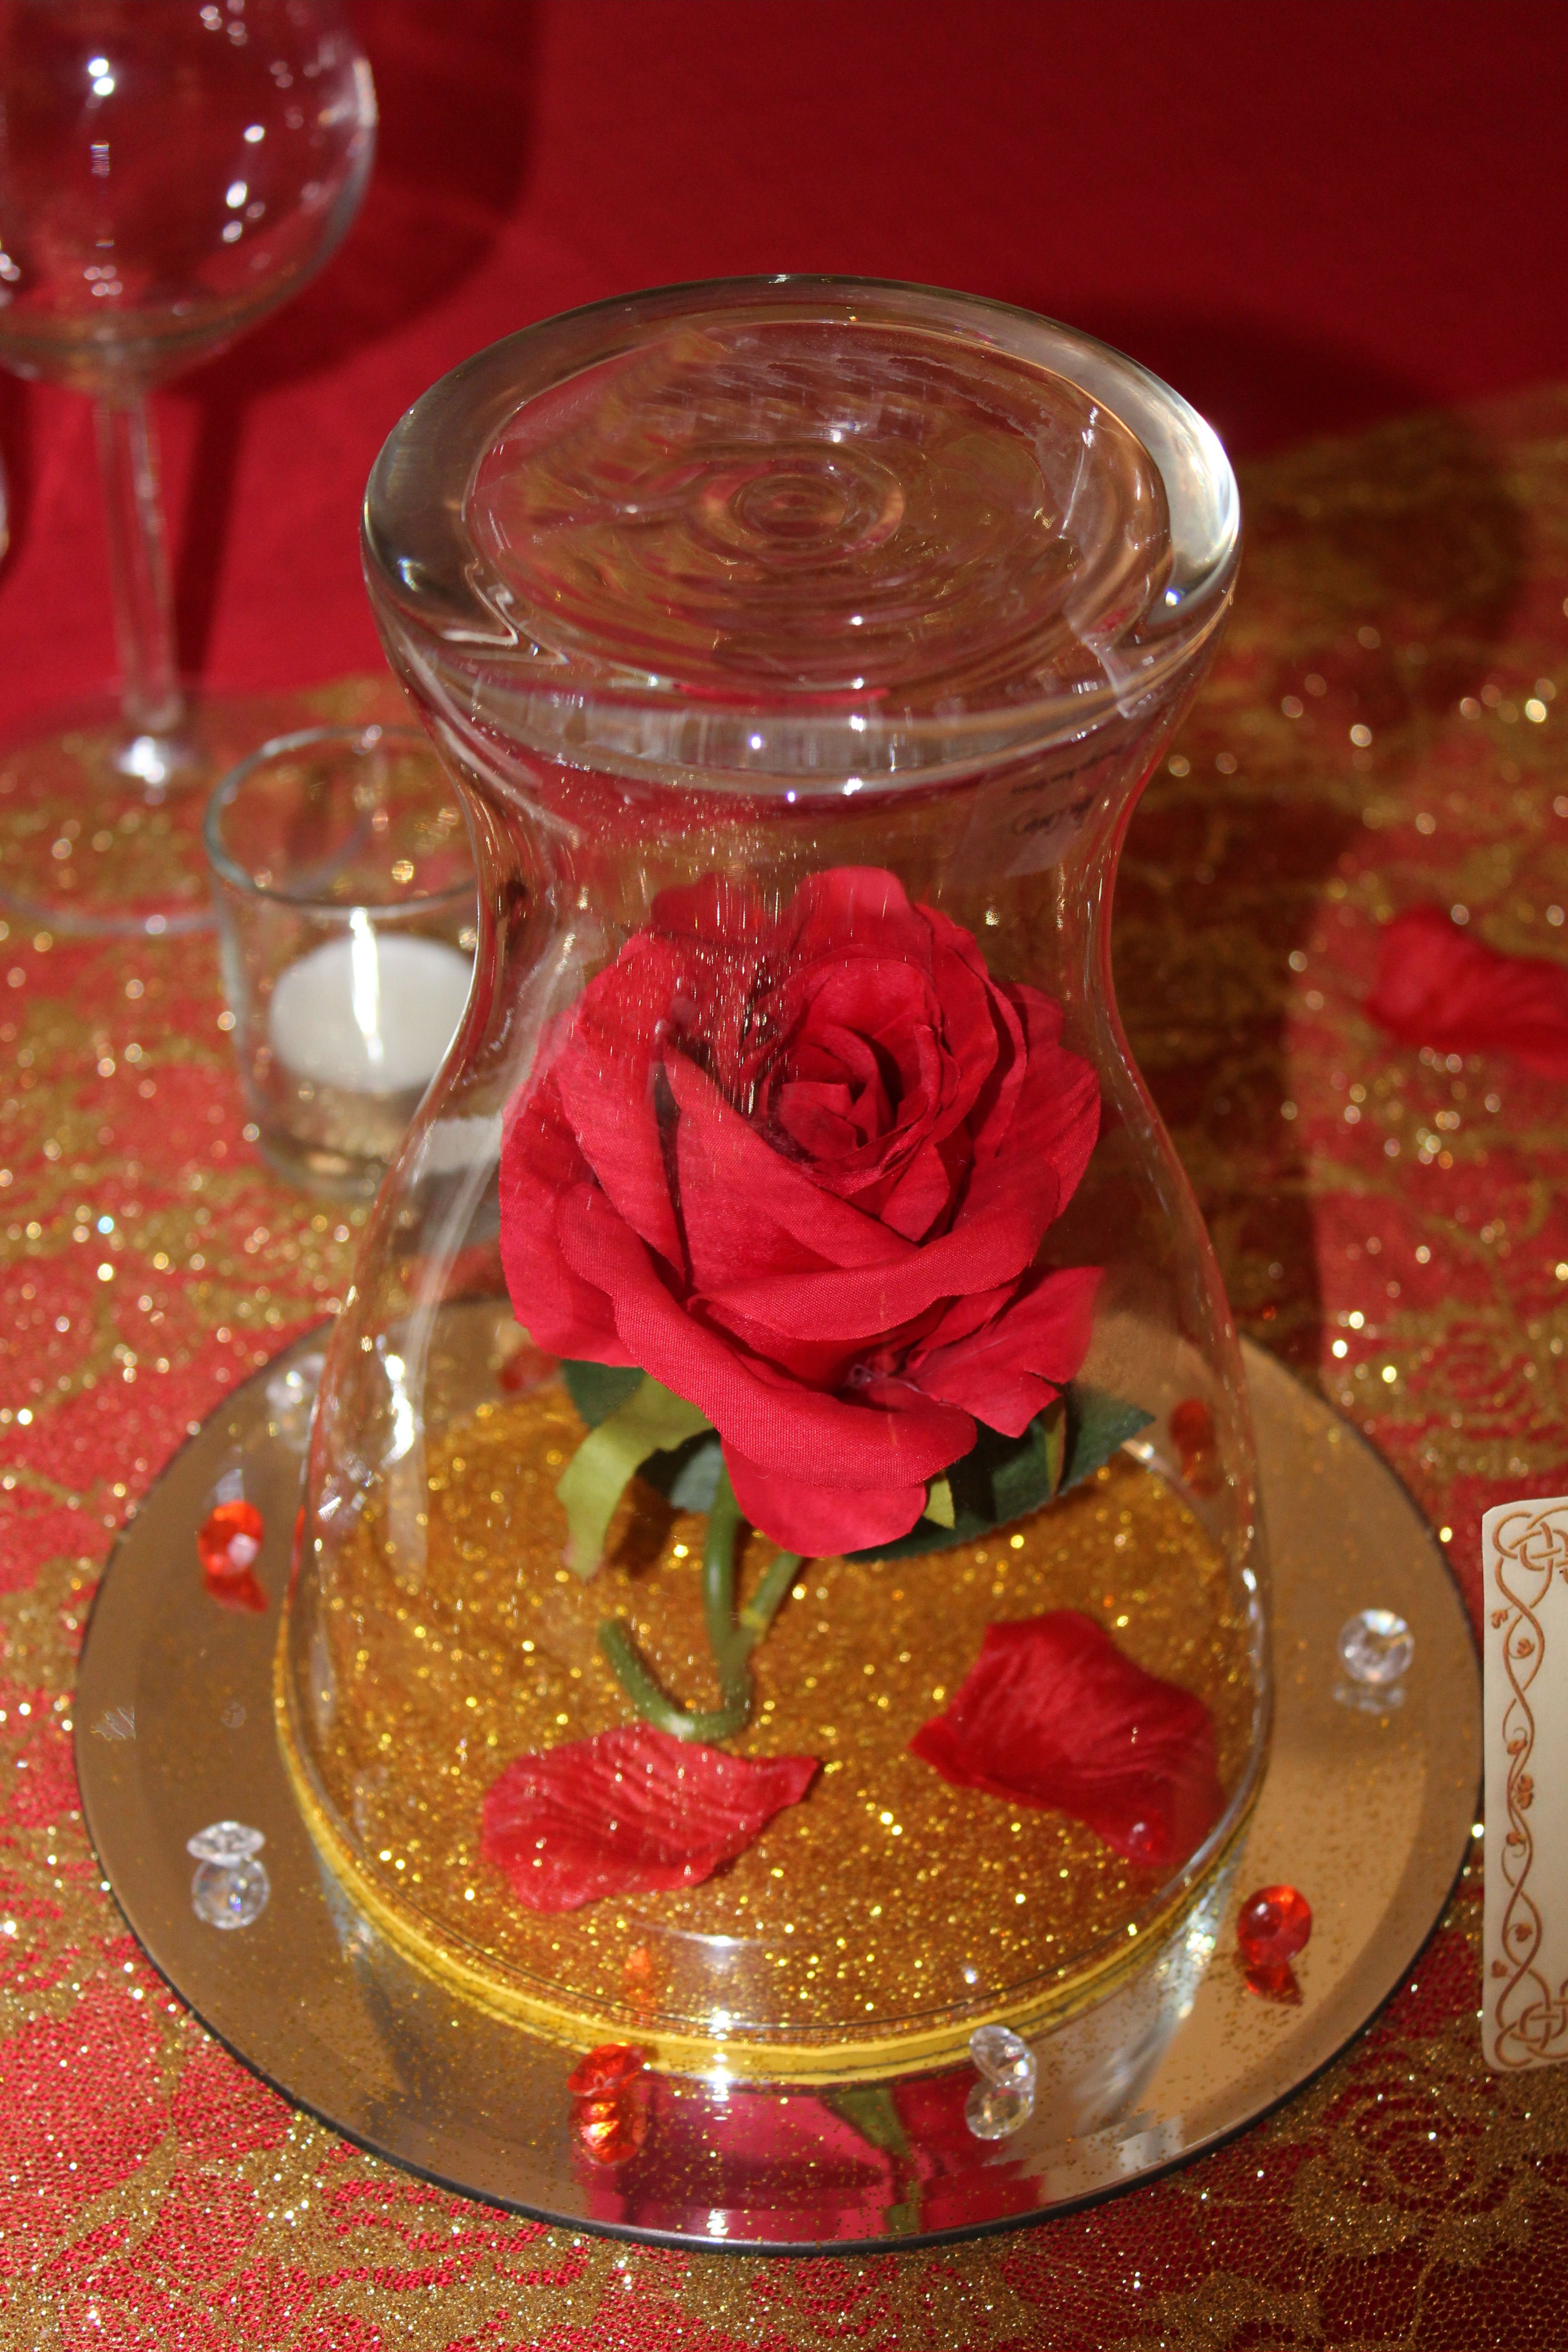 Centerpiece Beauty and the Beast | Beauty and beast wedding, Beauty and the beast  wedding theme, Beauty and beast birthday